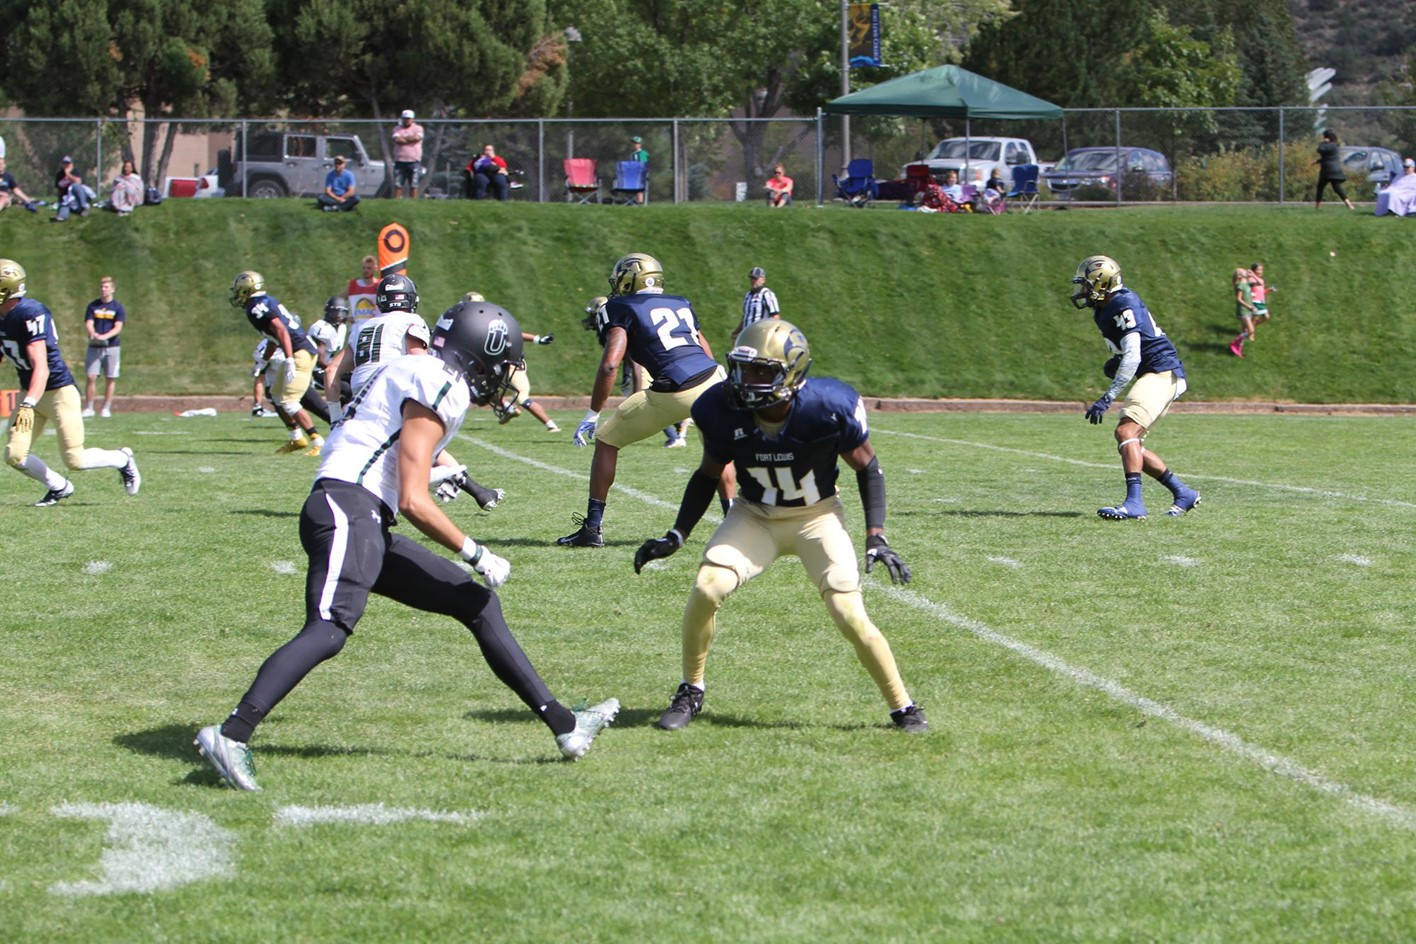 Skyhawks Football Plays Mustangs In Non Conference Game Fort Lewis